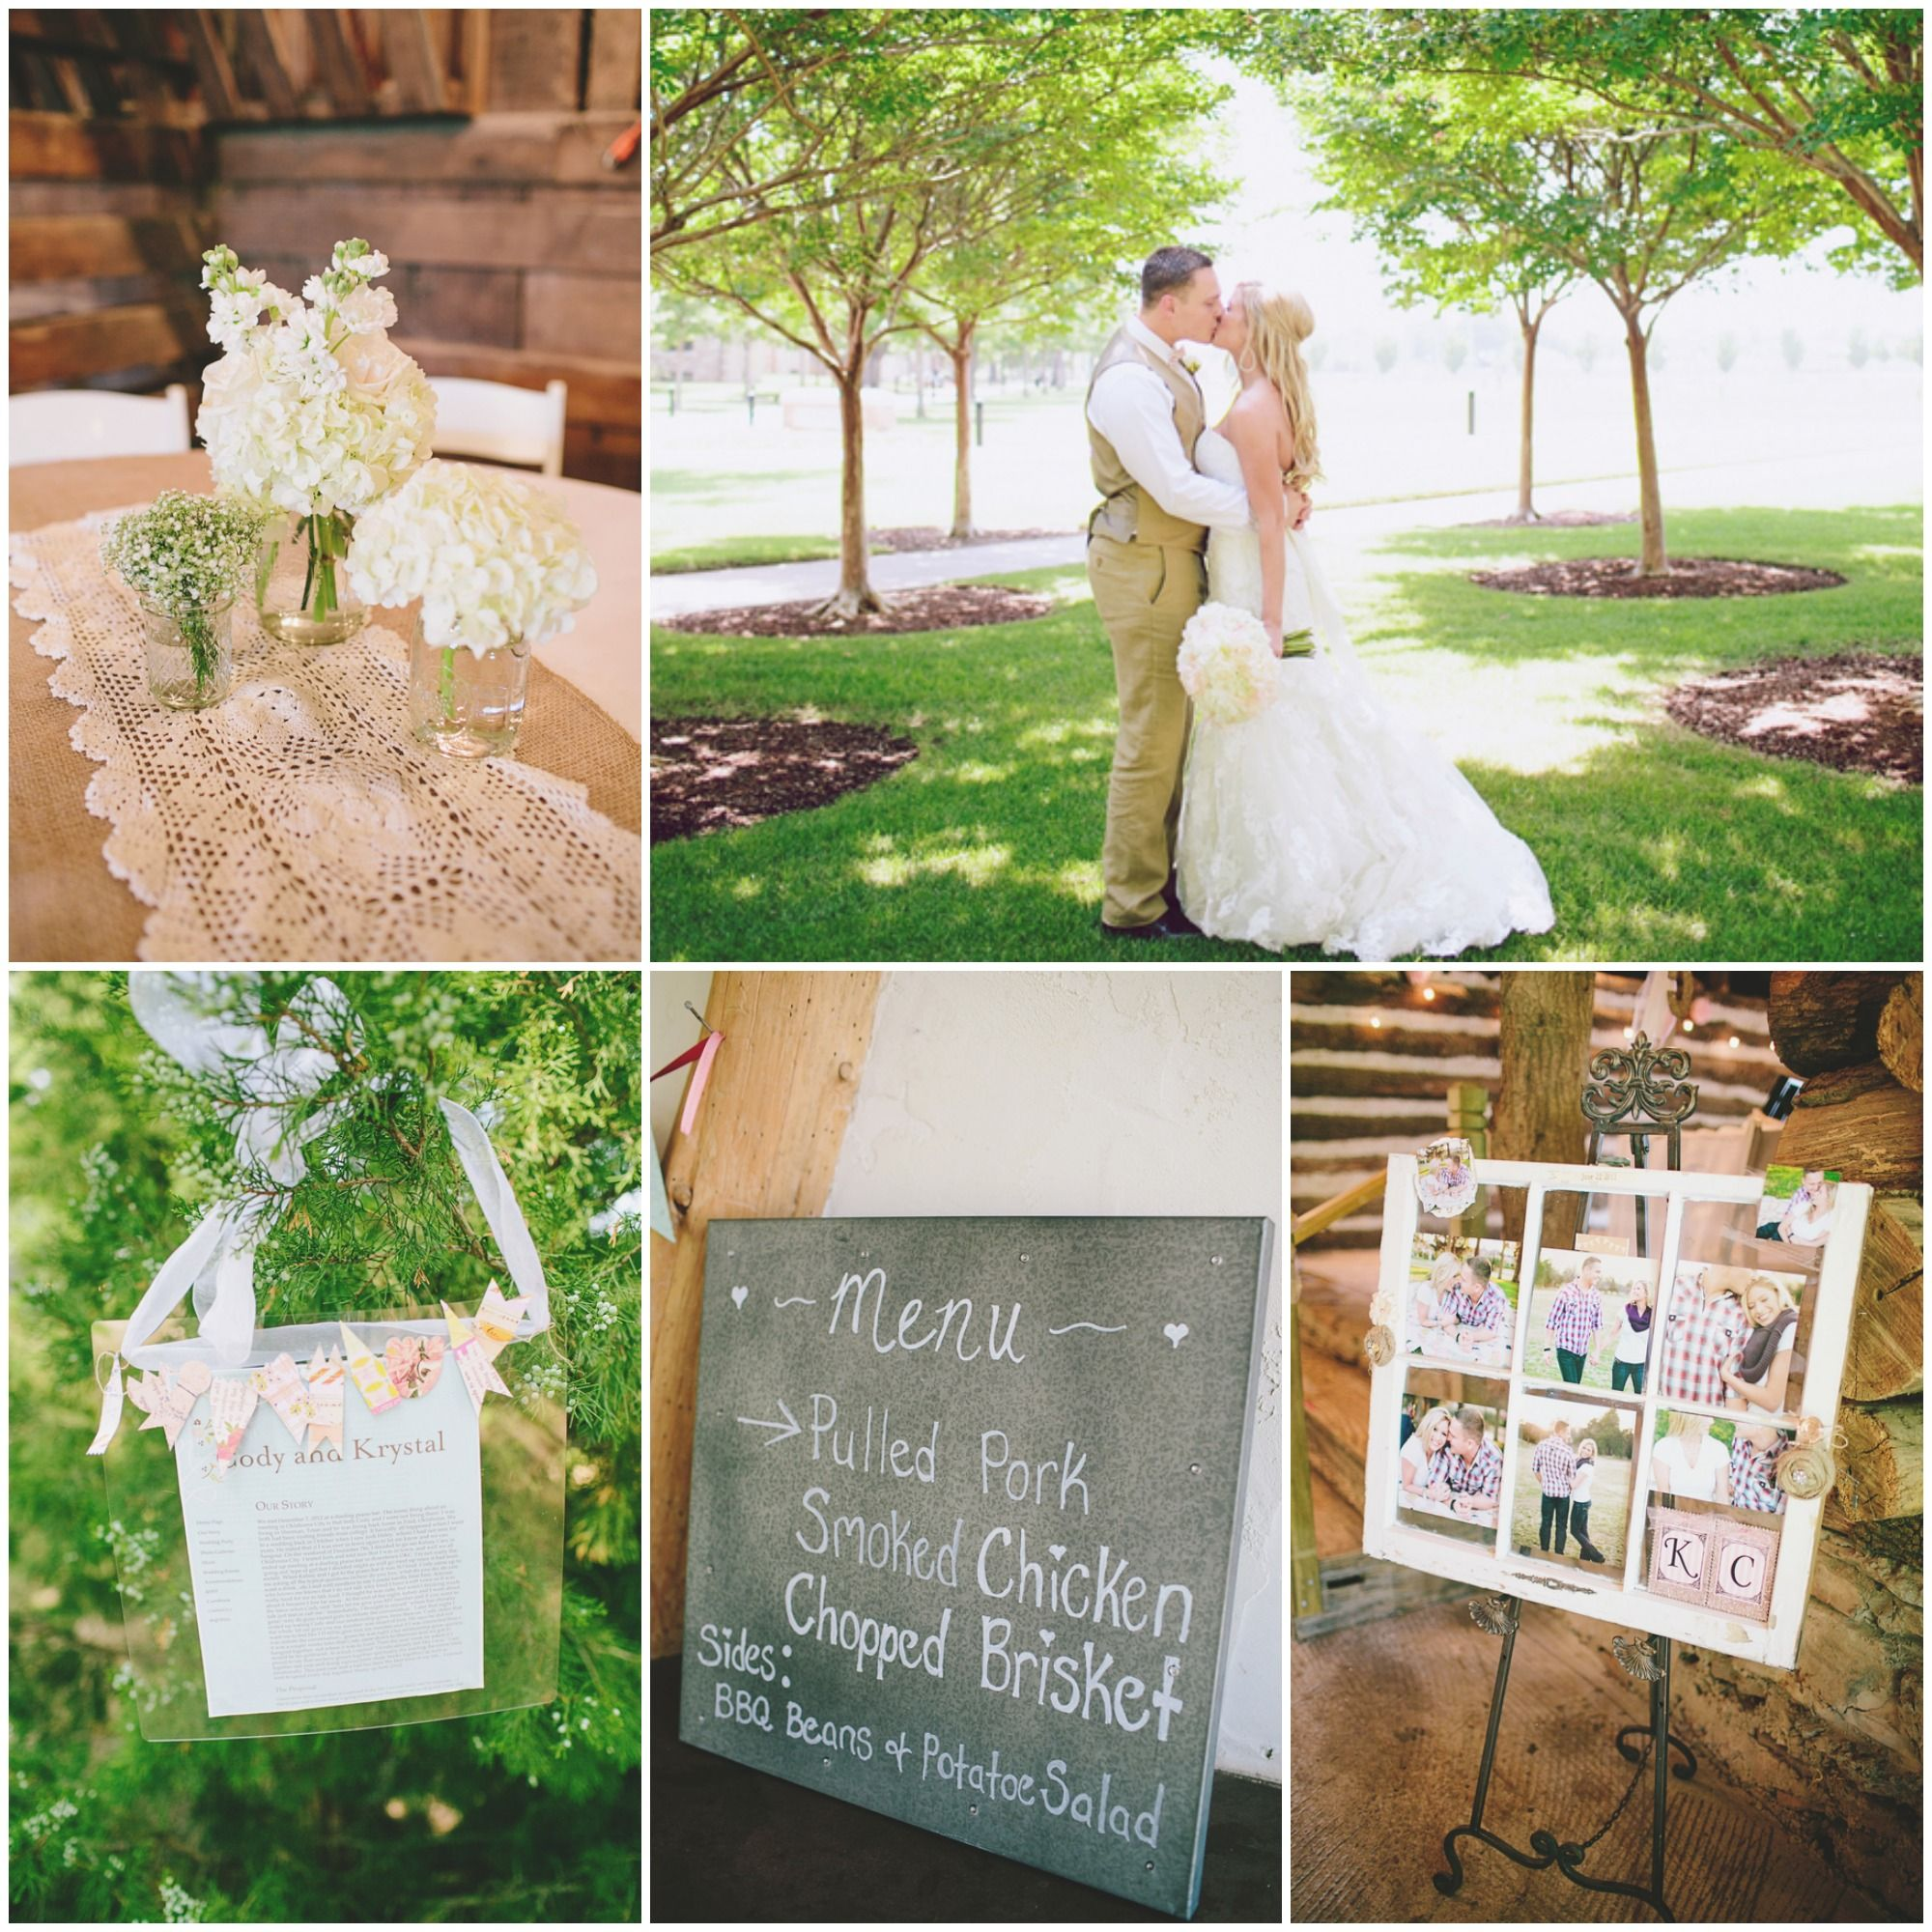 Country Wedding Decorations Southern Barn At Vive Le Ranch Rustic Chic